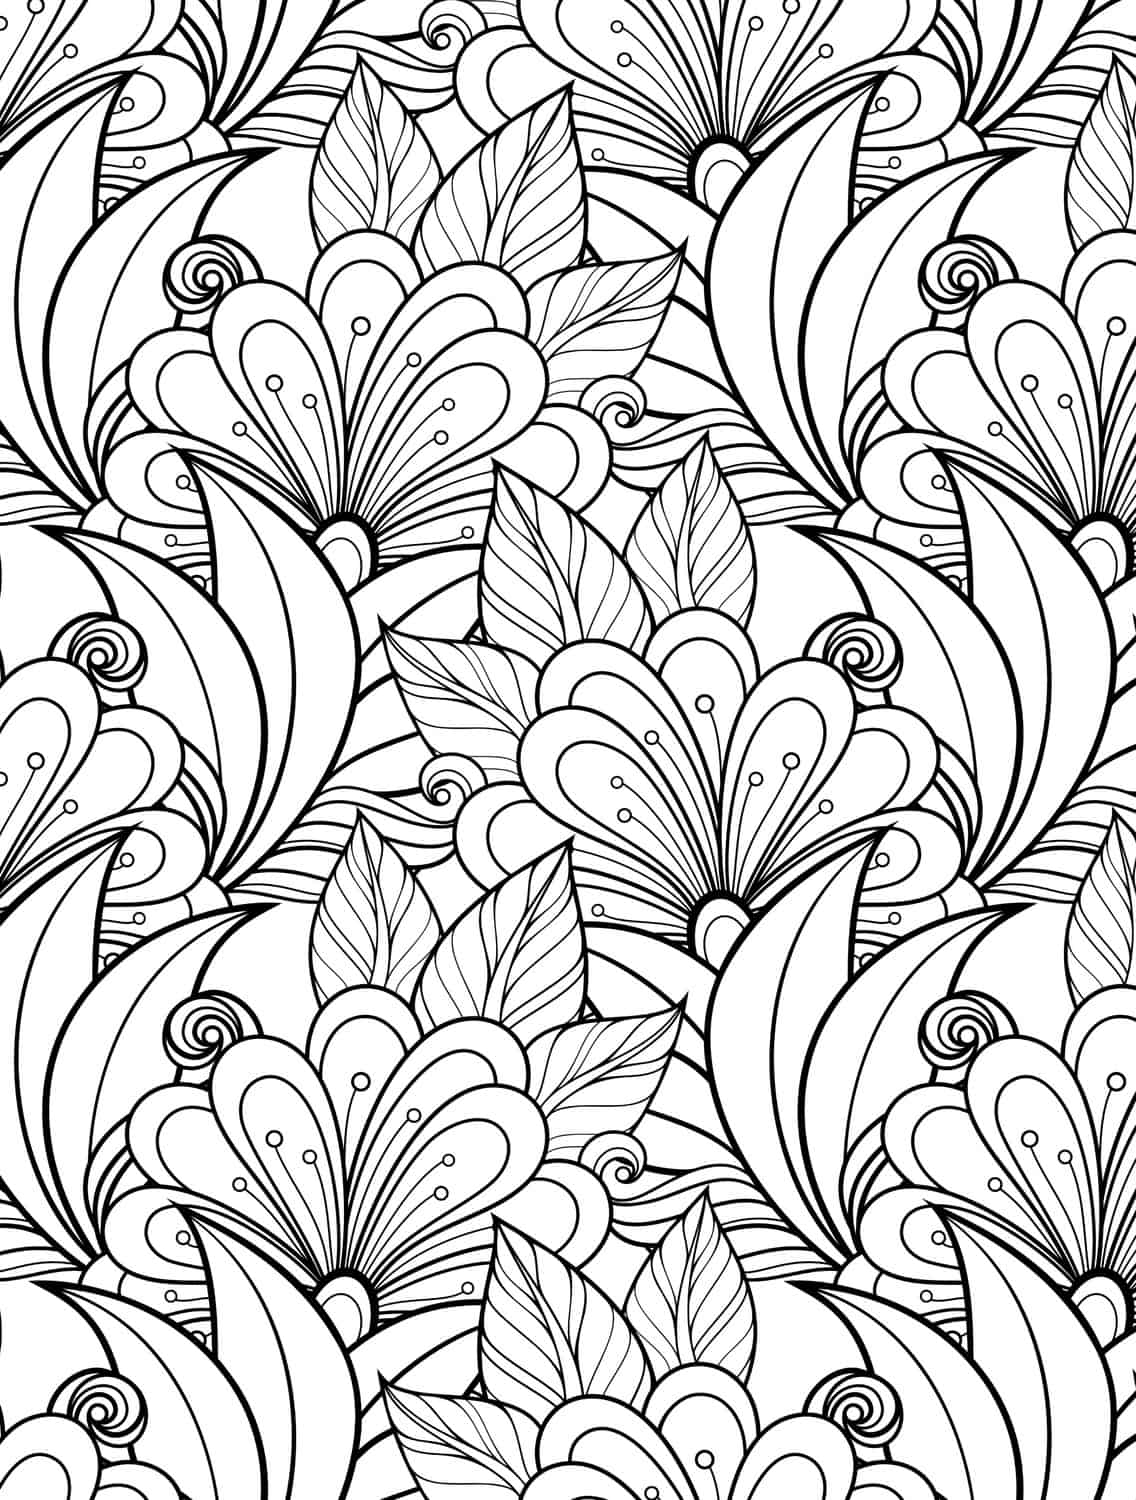 24 more free printable adult coloring pages page 7 of 25 for Adult coloring pages printable